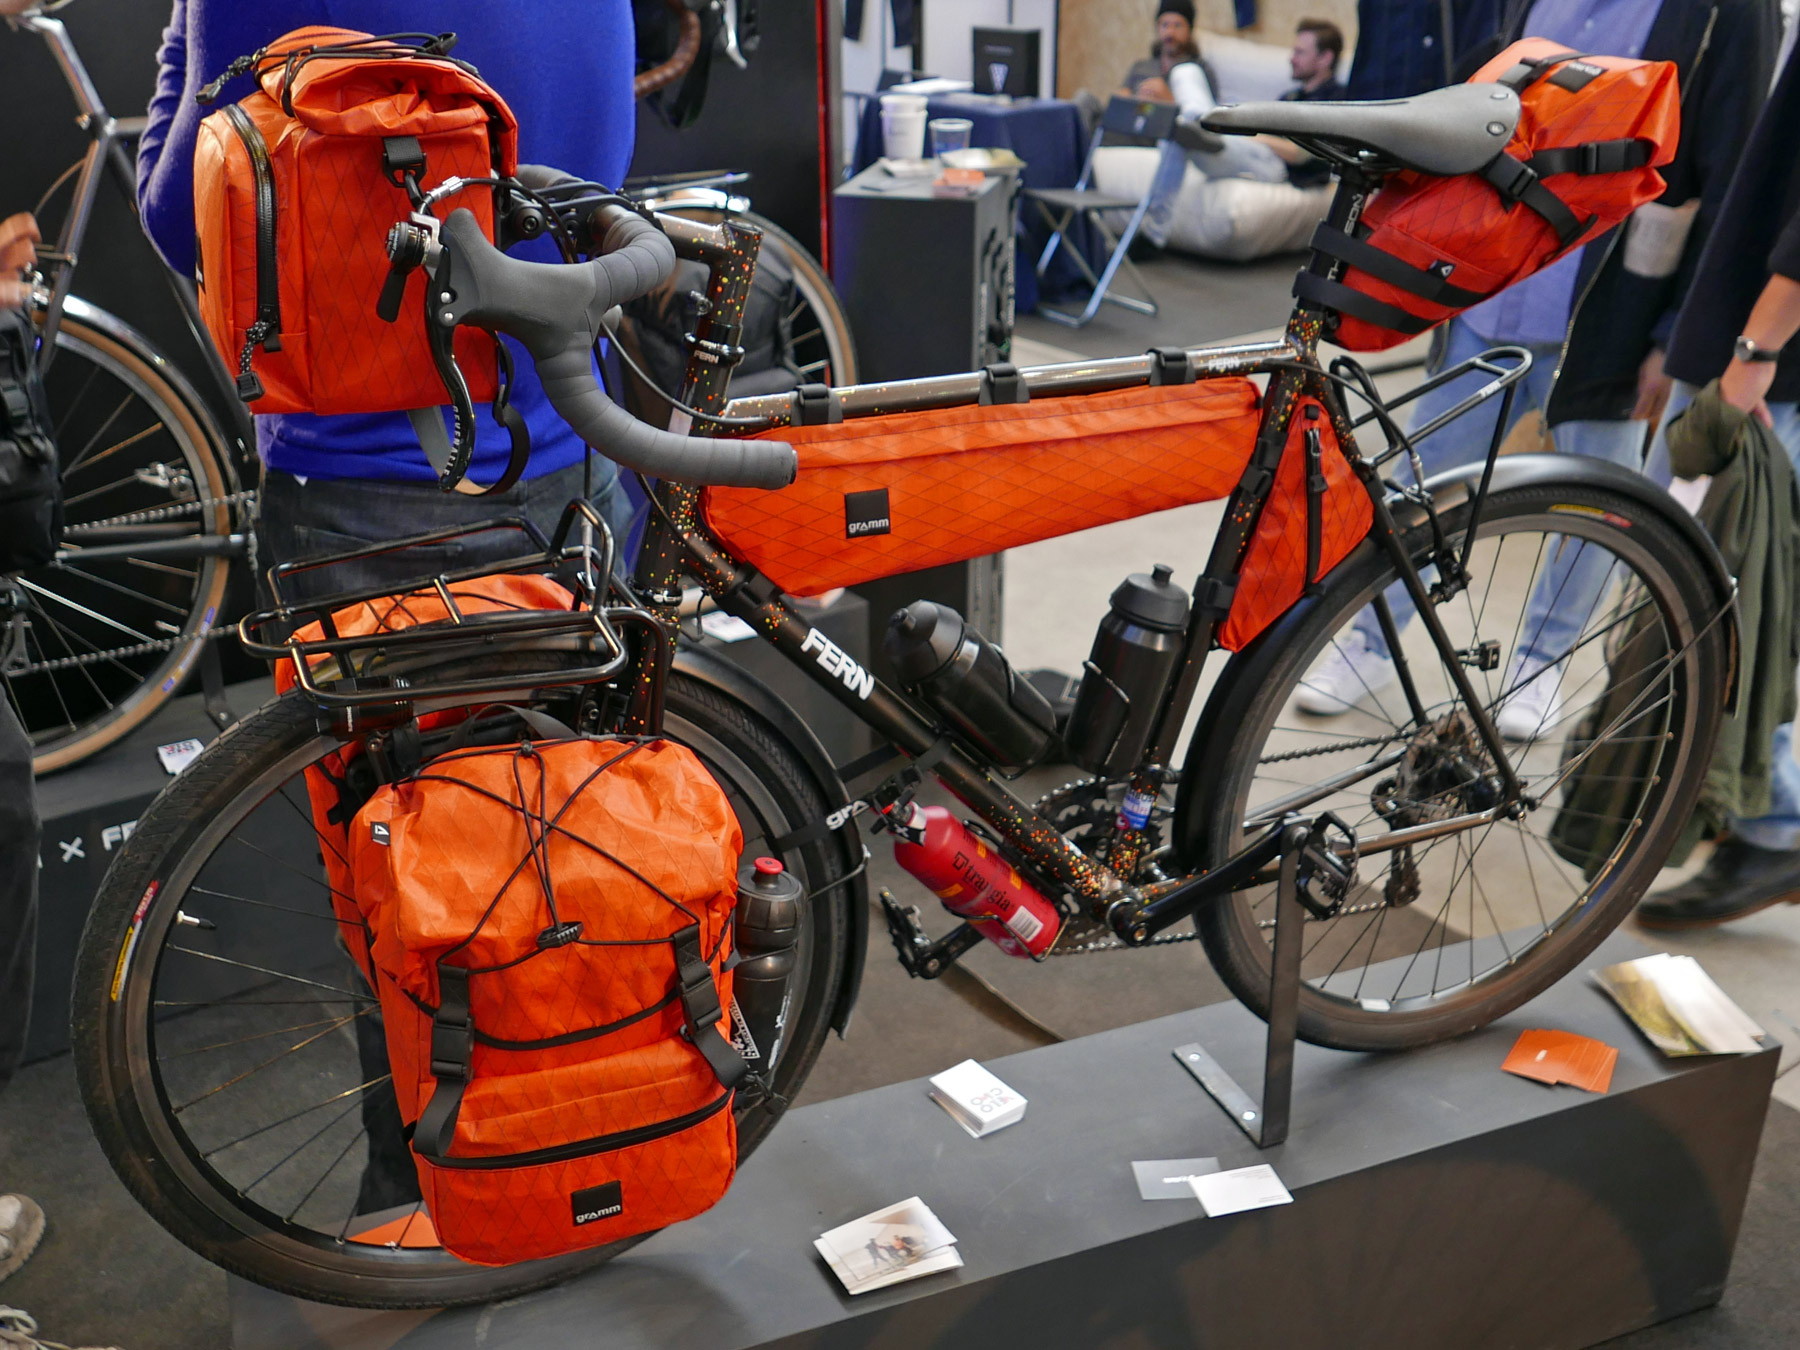 WFS 2016: Gramm packs your gear into every nook, new packs ...